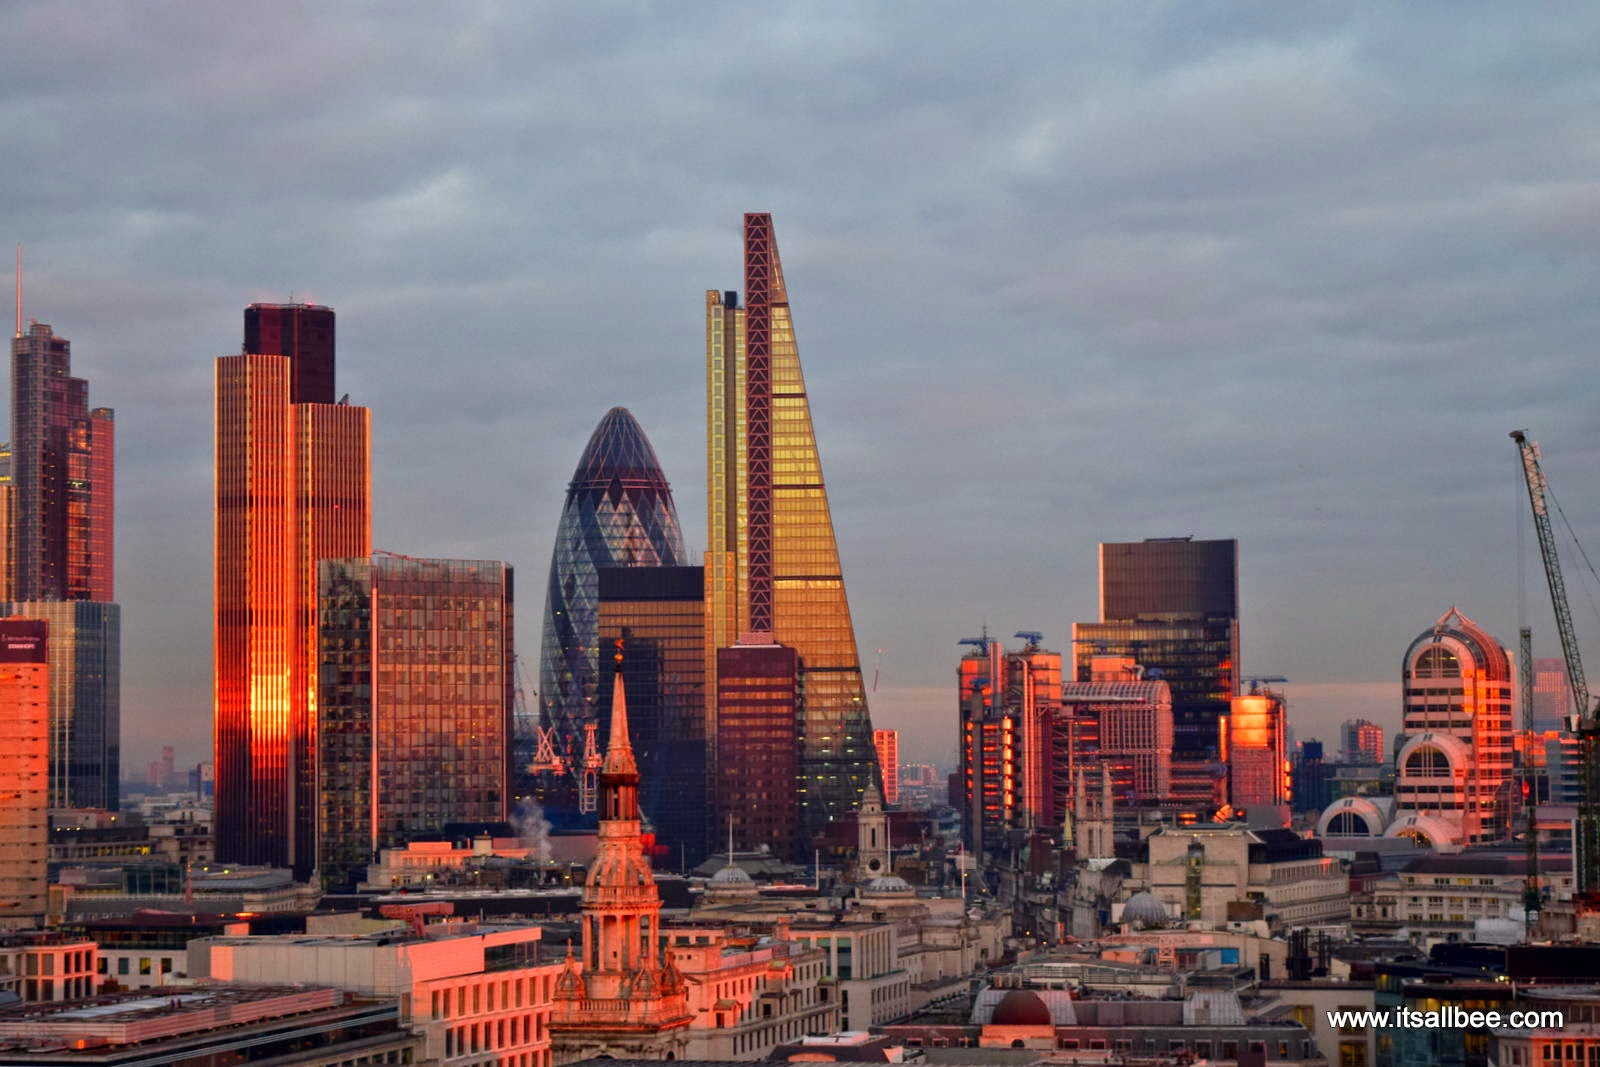 Sunset In London | 5 Top Places For The Best Sunset Views Of The London Skyline